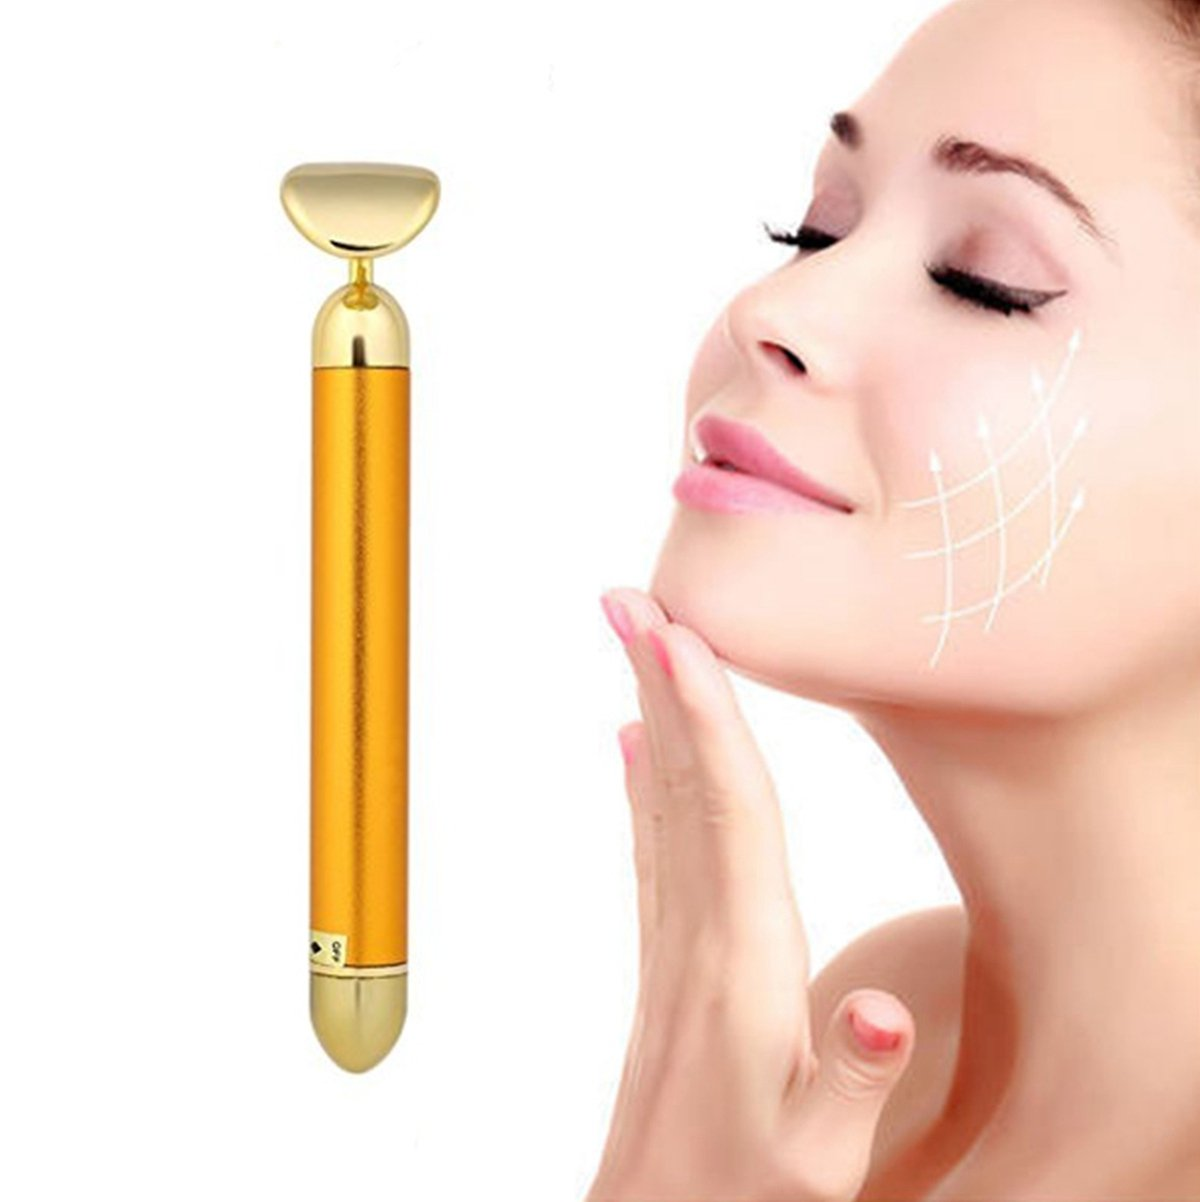 Beauty Bar 24k Golden Pulse Facial Massager, Round Roller Energy Gold Stick Skincare Wrinkle Treatment Body Care, Eliminate Dark Circles (Round Roller)